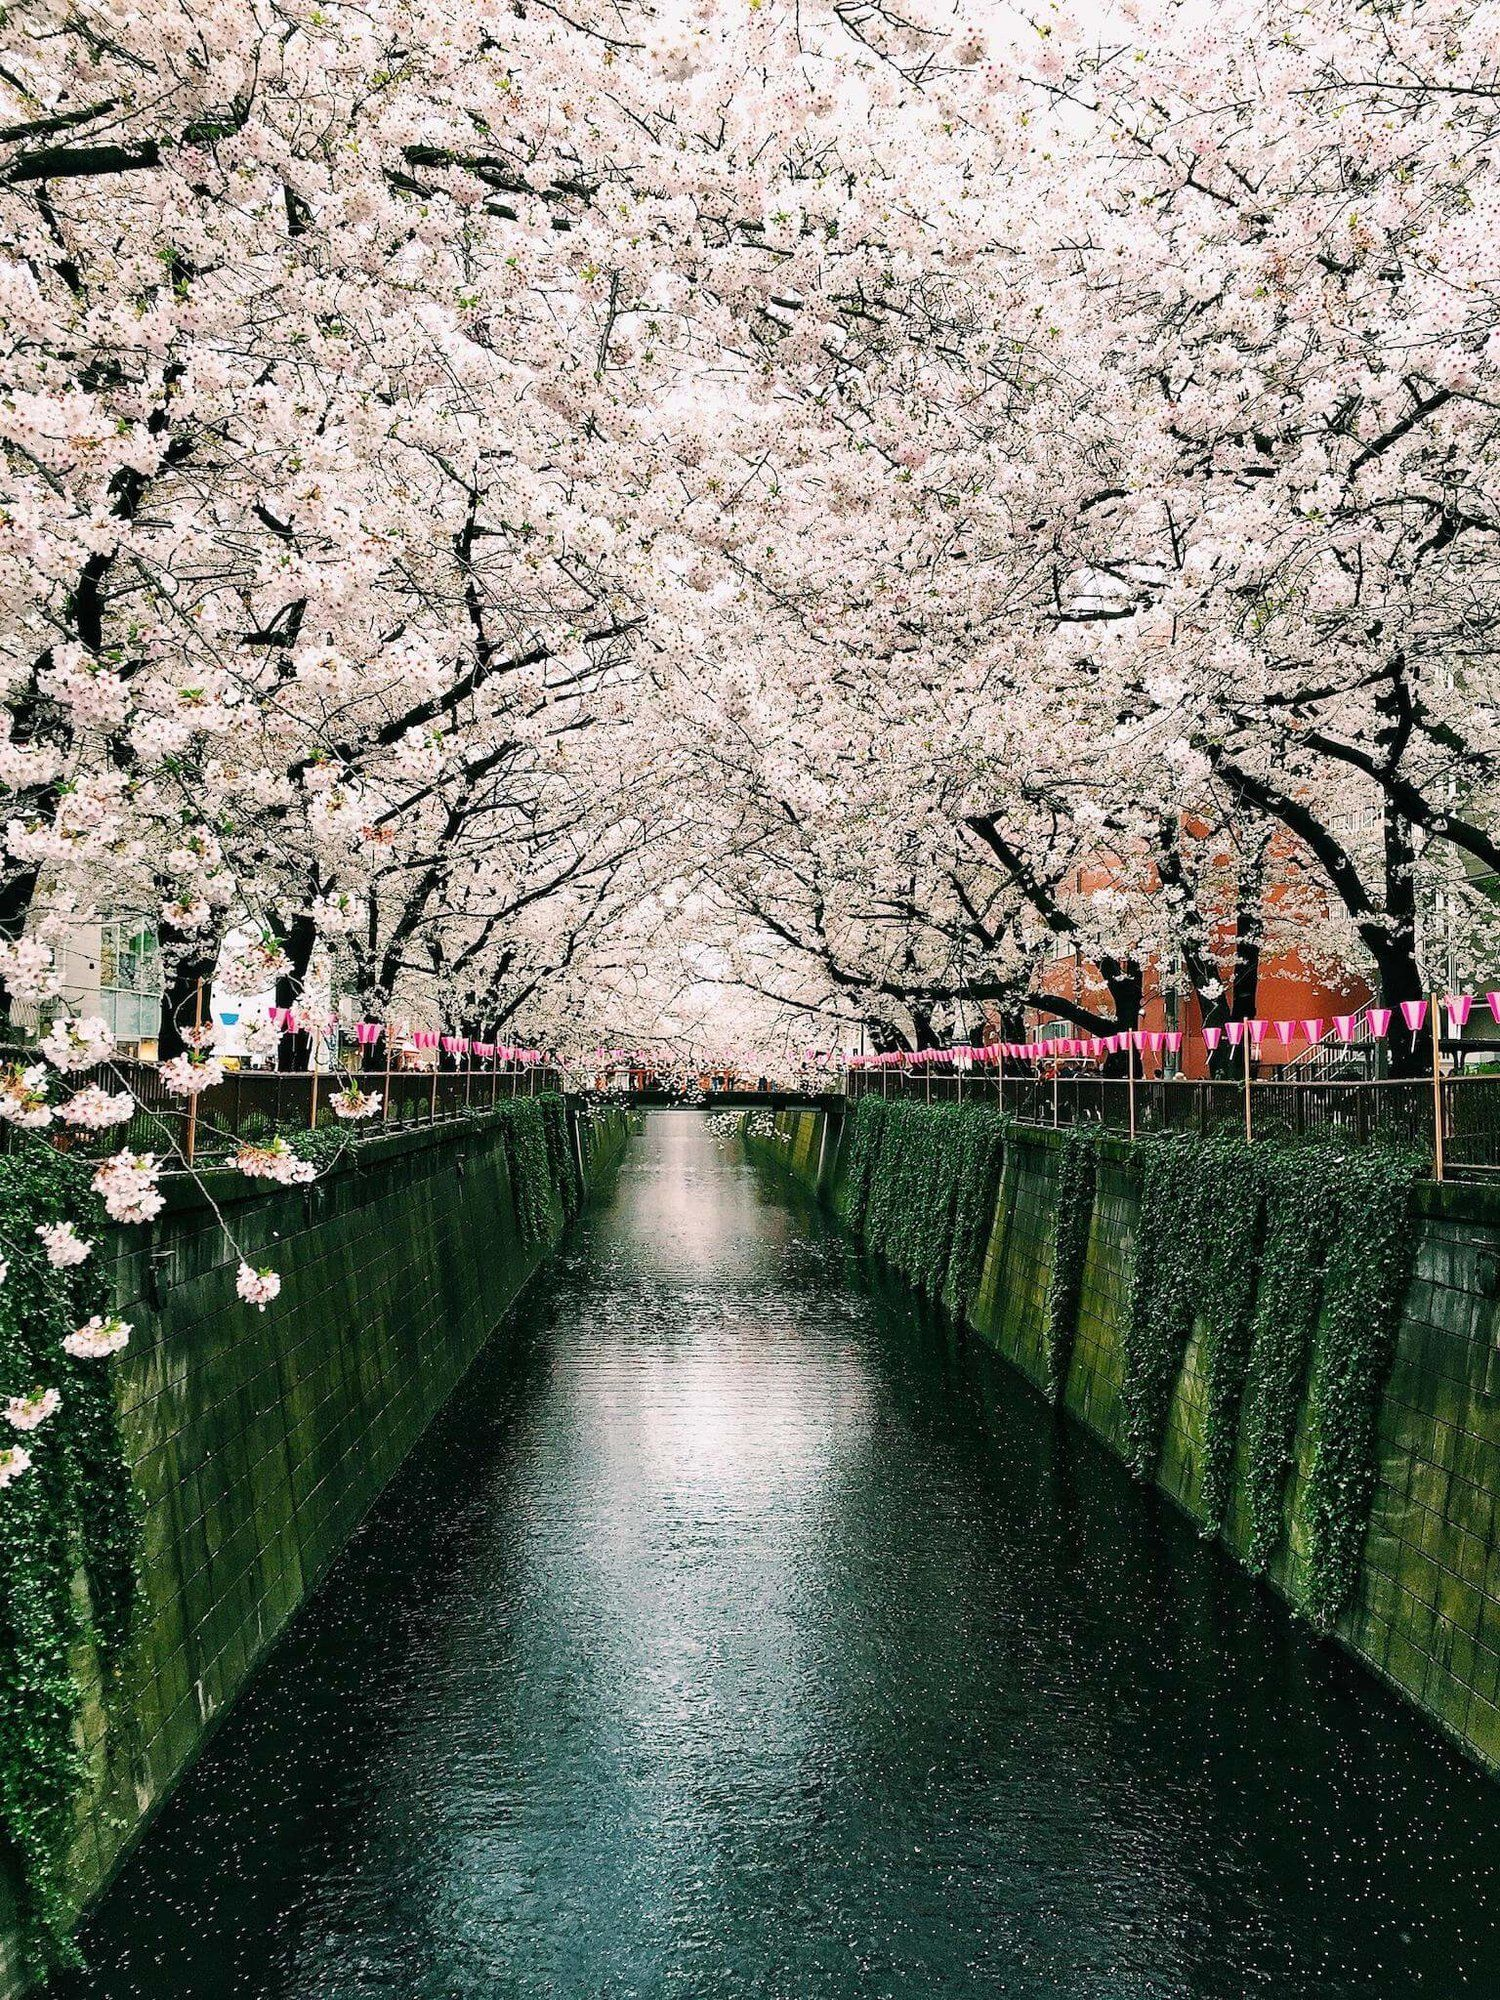 Meguro River Satisfying Pictures Cherry Blossom Cherry Blossom Japan